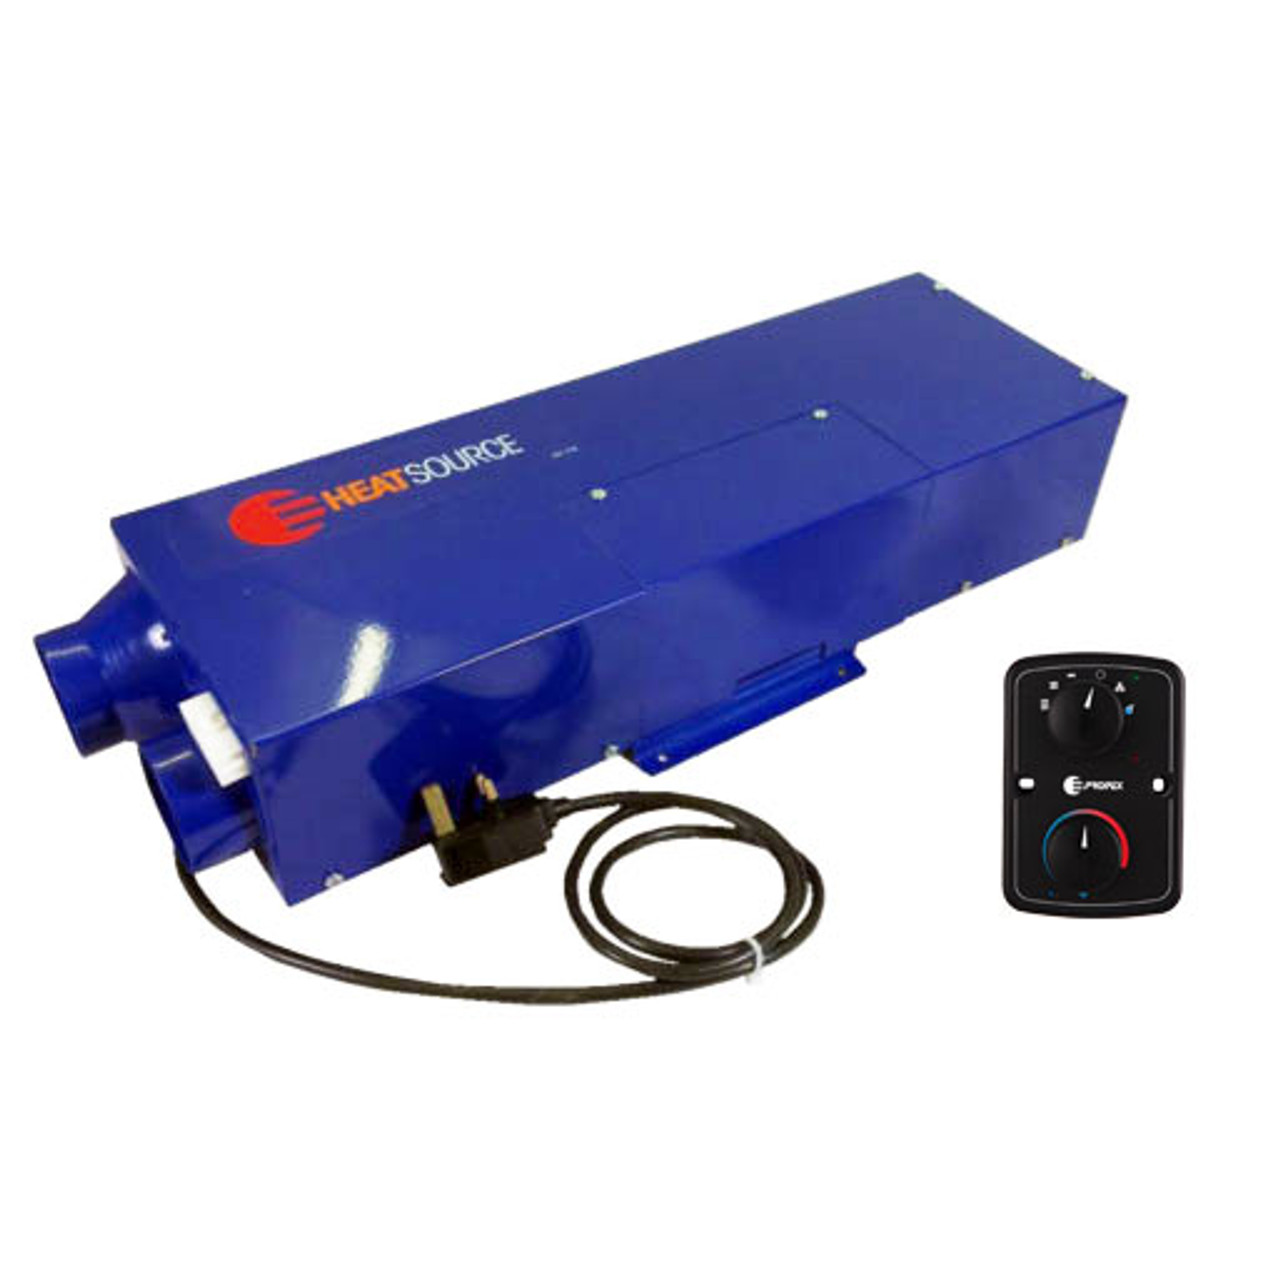 Propex HS2000E heater for campervan and motorhome